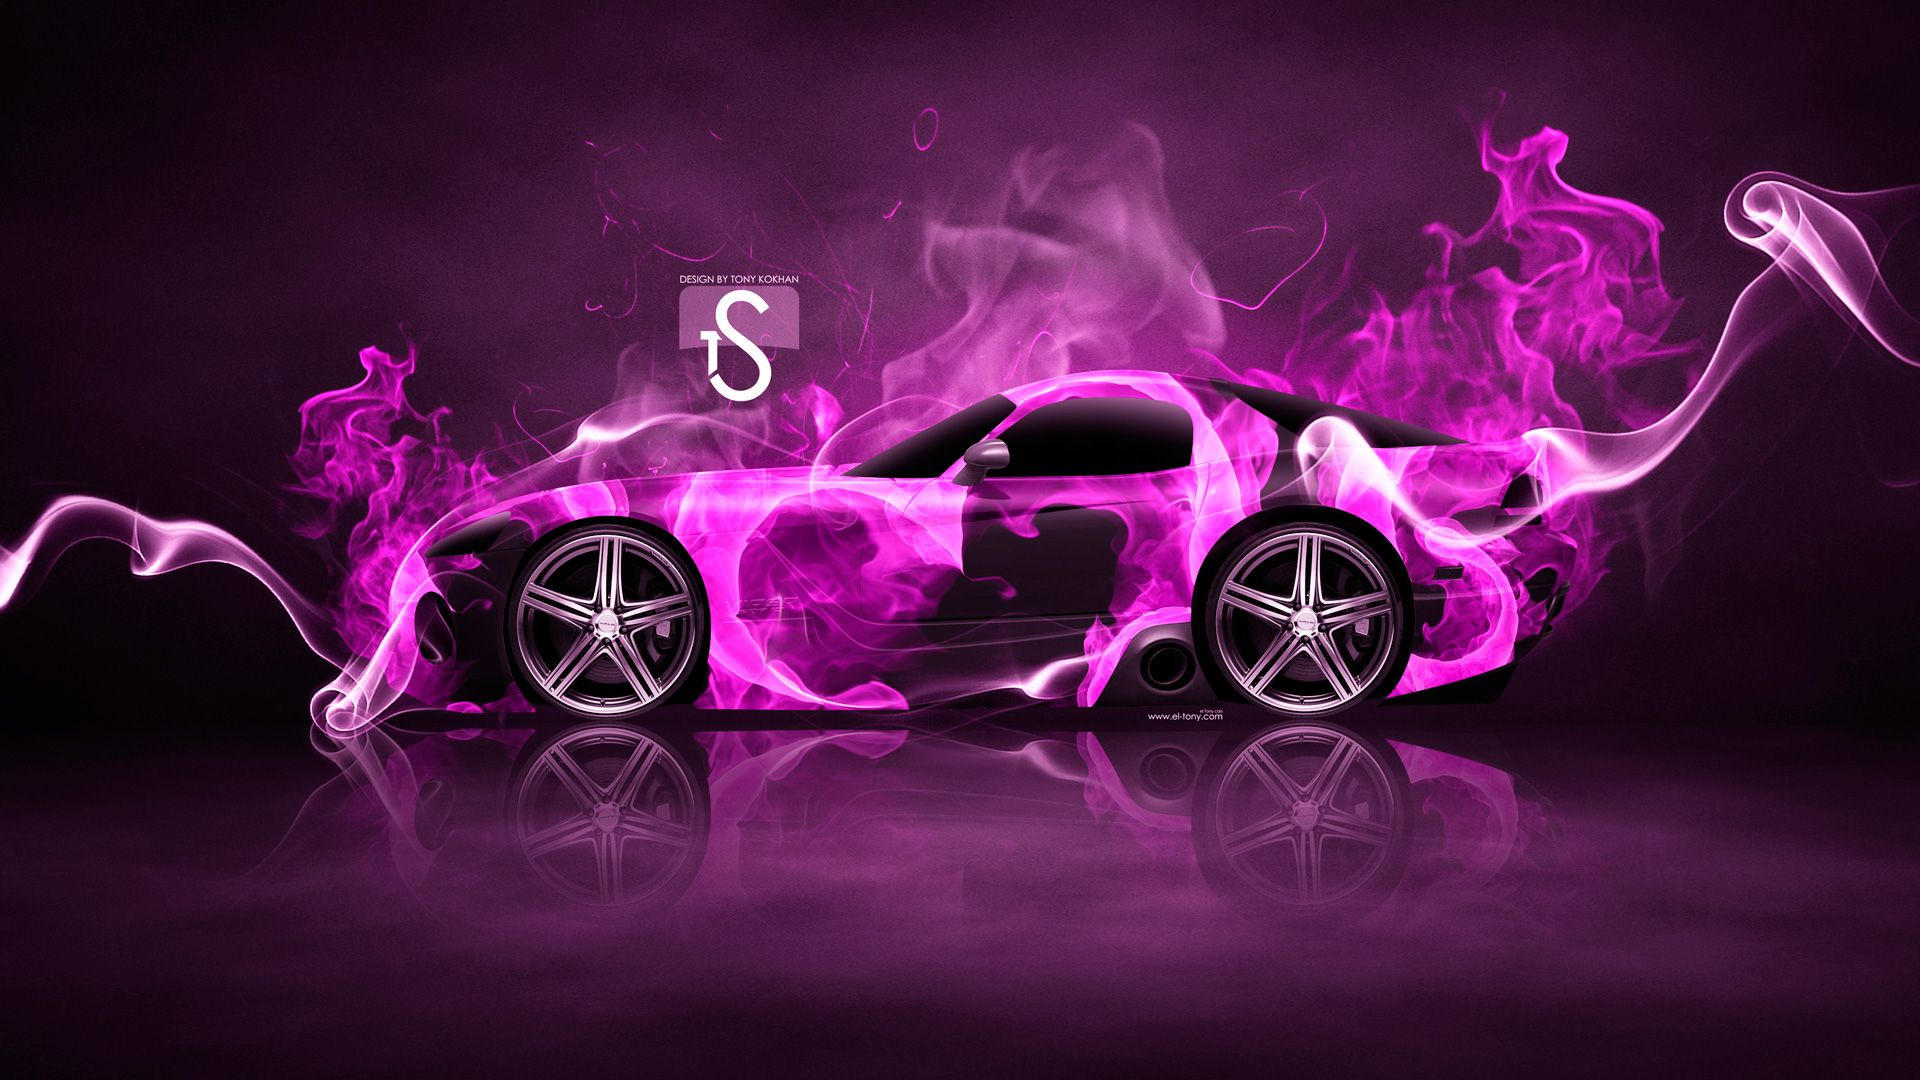 Dodge Viper SRT Front Fire Abstract Car 2014 Photoshop HD Wallpapers Design By Tony Kokhan [www.el Tony.com]  | El Tony.com | Pinterest | Dodge Viper, Viper ...